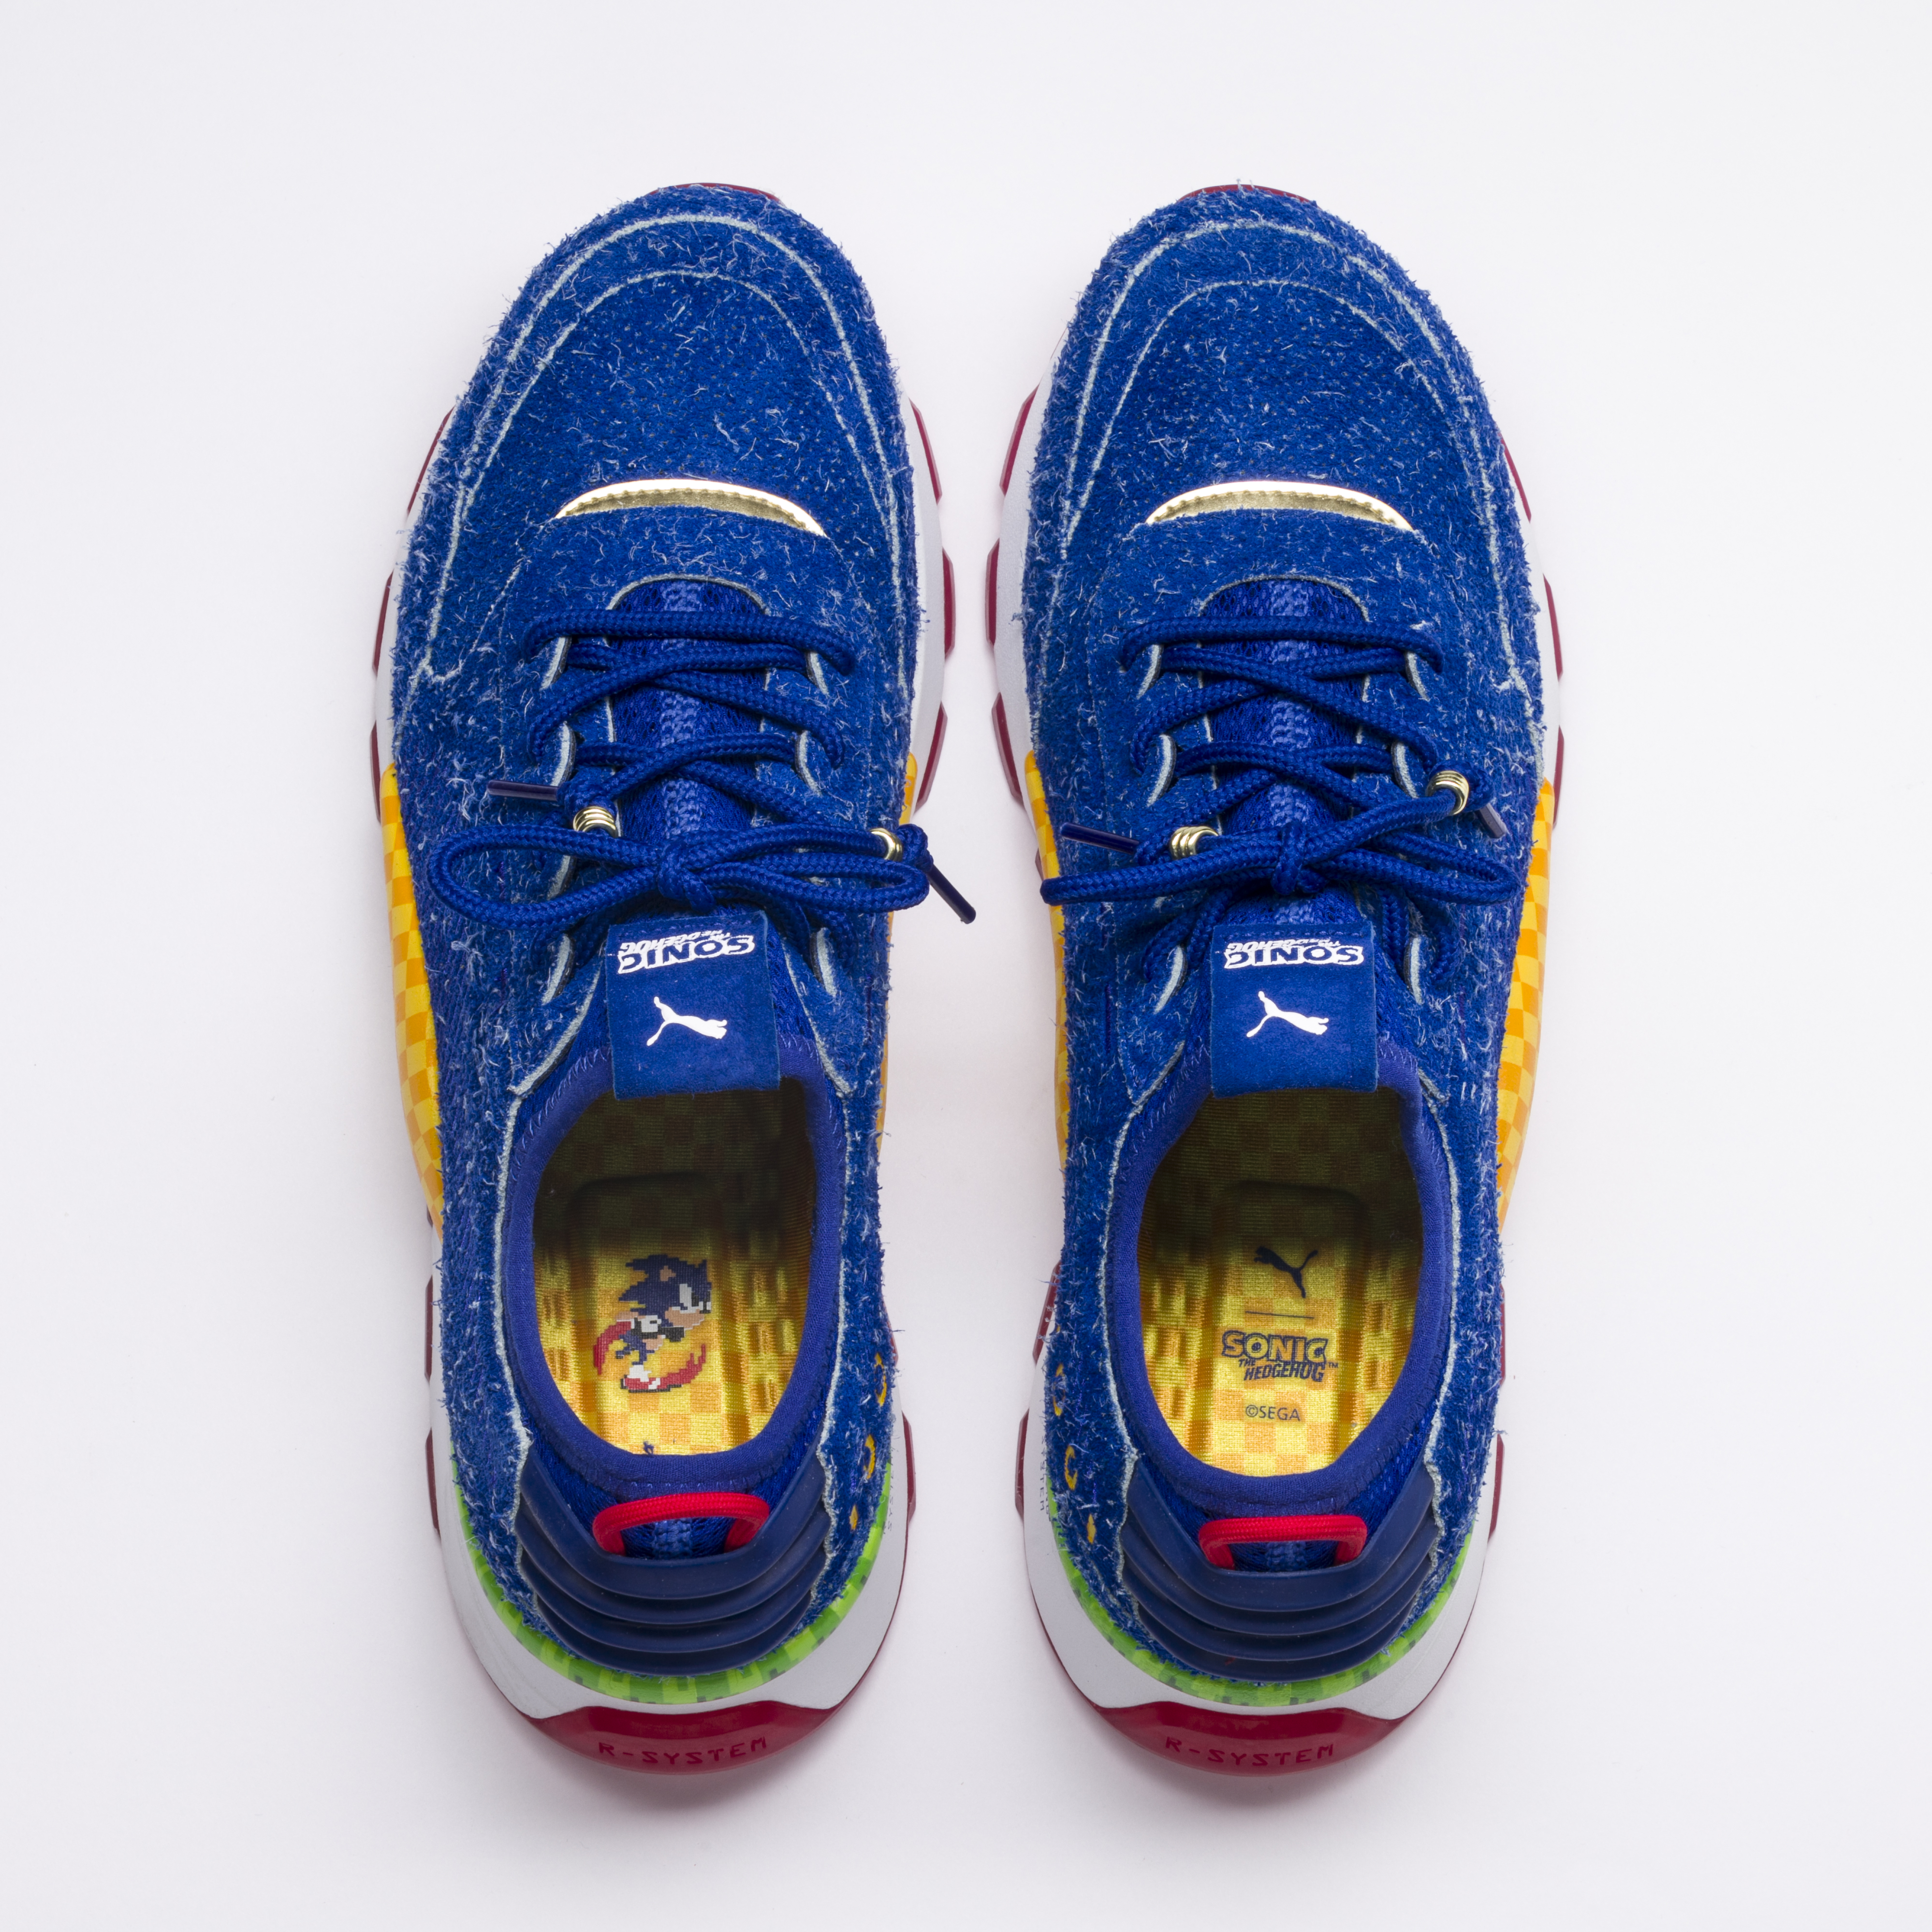 c9eb2db566a6aa Puma s Sonic the Hedgehog sneakers on sale starting June 5 - Polygon